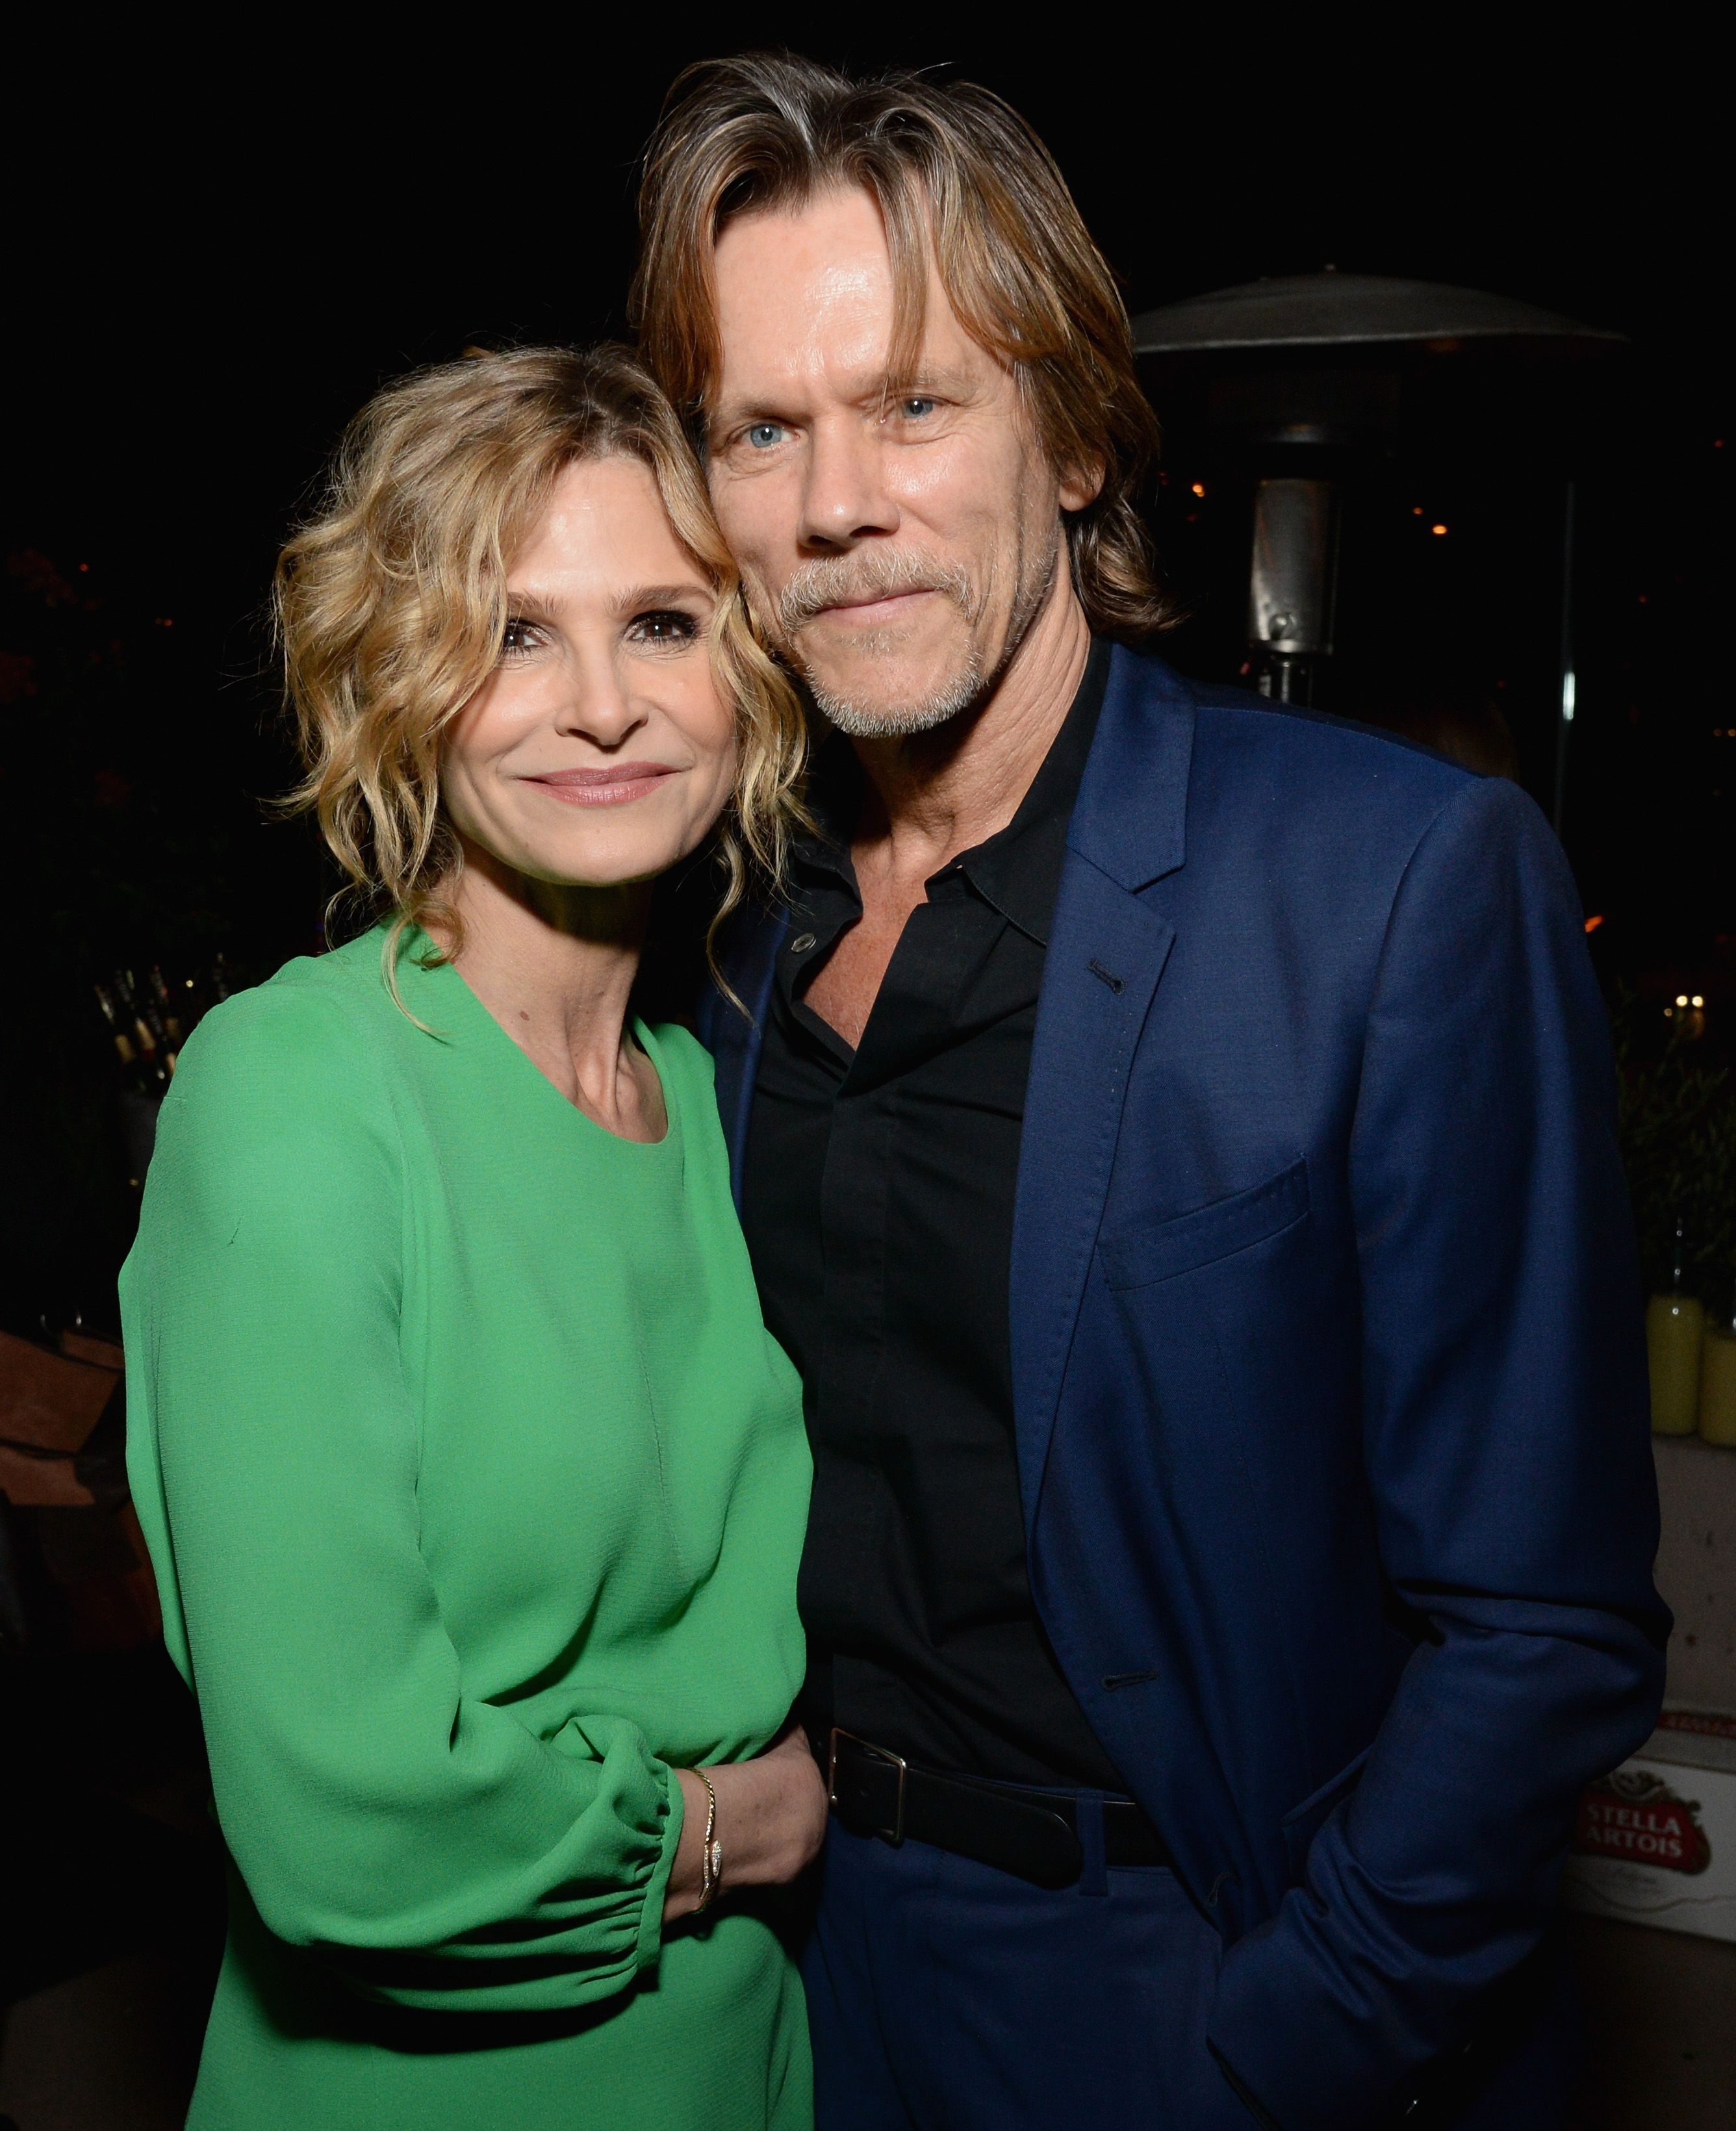 Kyra Sedgwick and Kevin Bacon at Moet Celebrates The 75th Anniversary of The Golden Globes Award Season at Catch LA on November 15, 2017   Photo: Getty Images